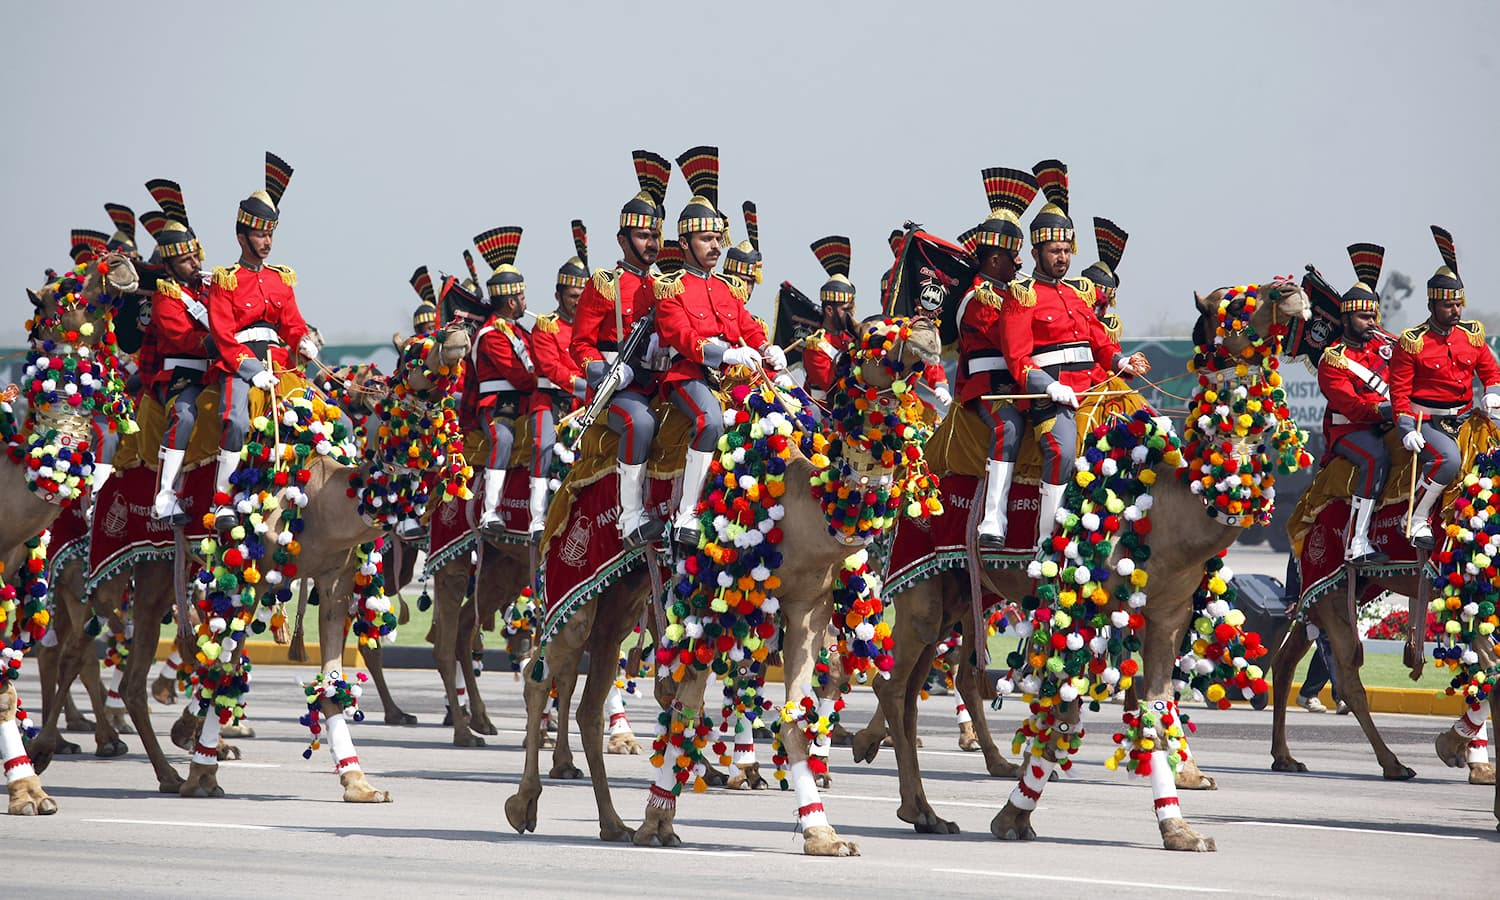 Pakistan's presidential guards ride on camels during the Pakistan Day military parade in Islamabad. ─AP